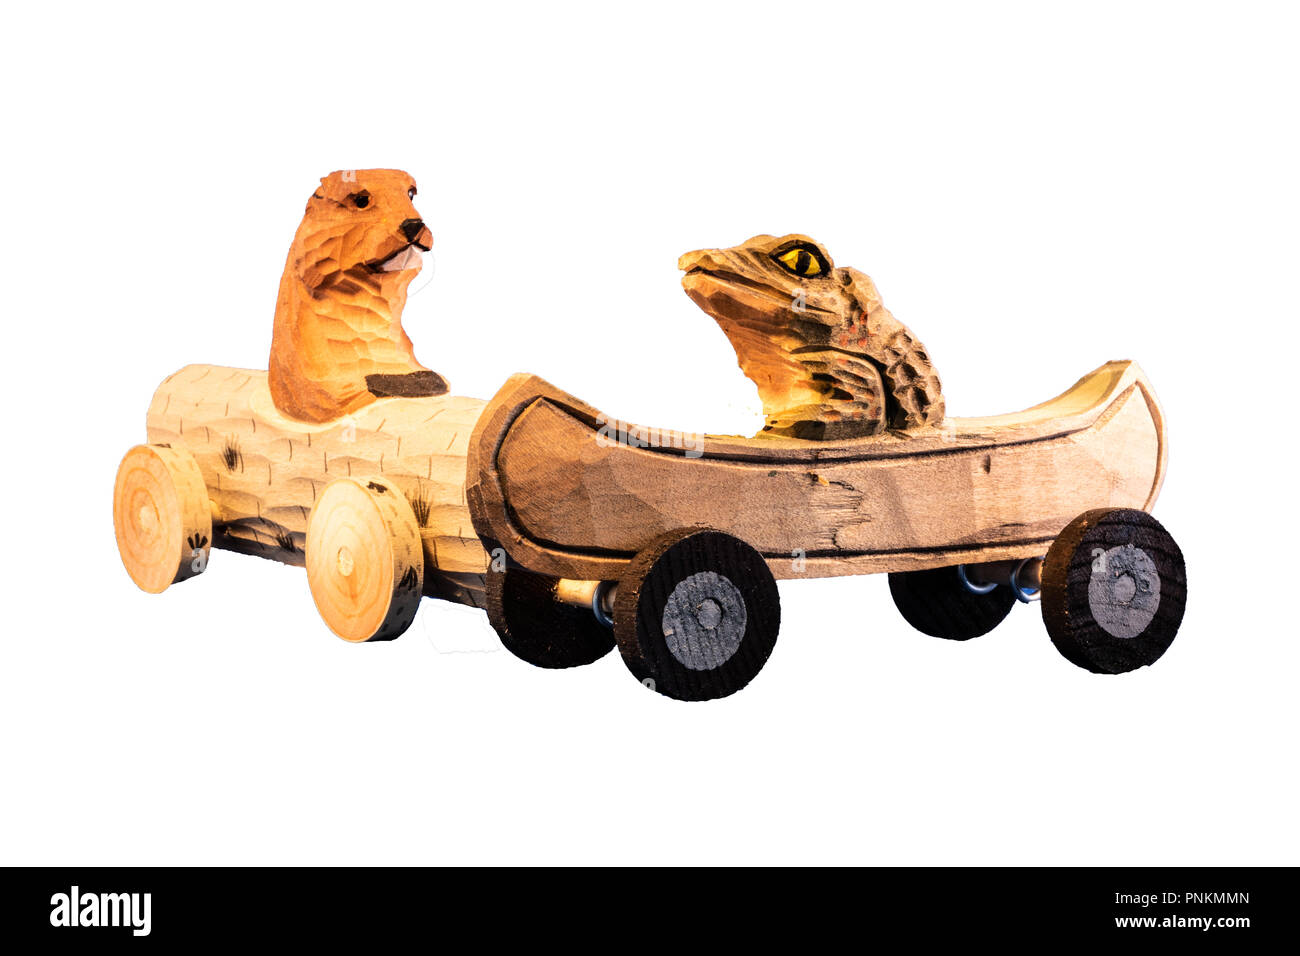 Wooden toy hedgehog and alligator driving small wood sports cars on a collision course, concept for traffic jam, passive aggressive behavior on isolat - Stock Image